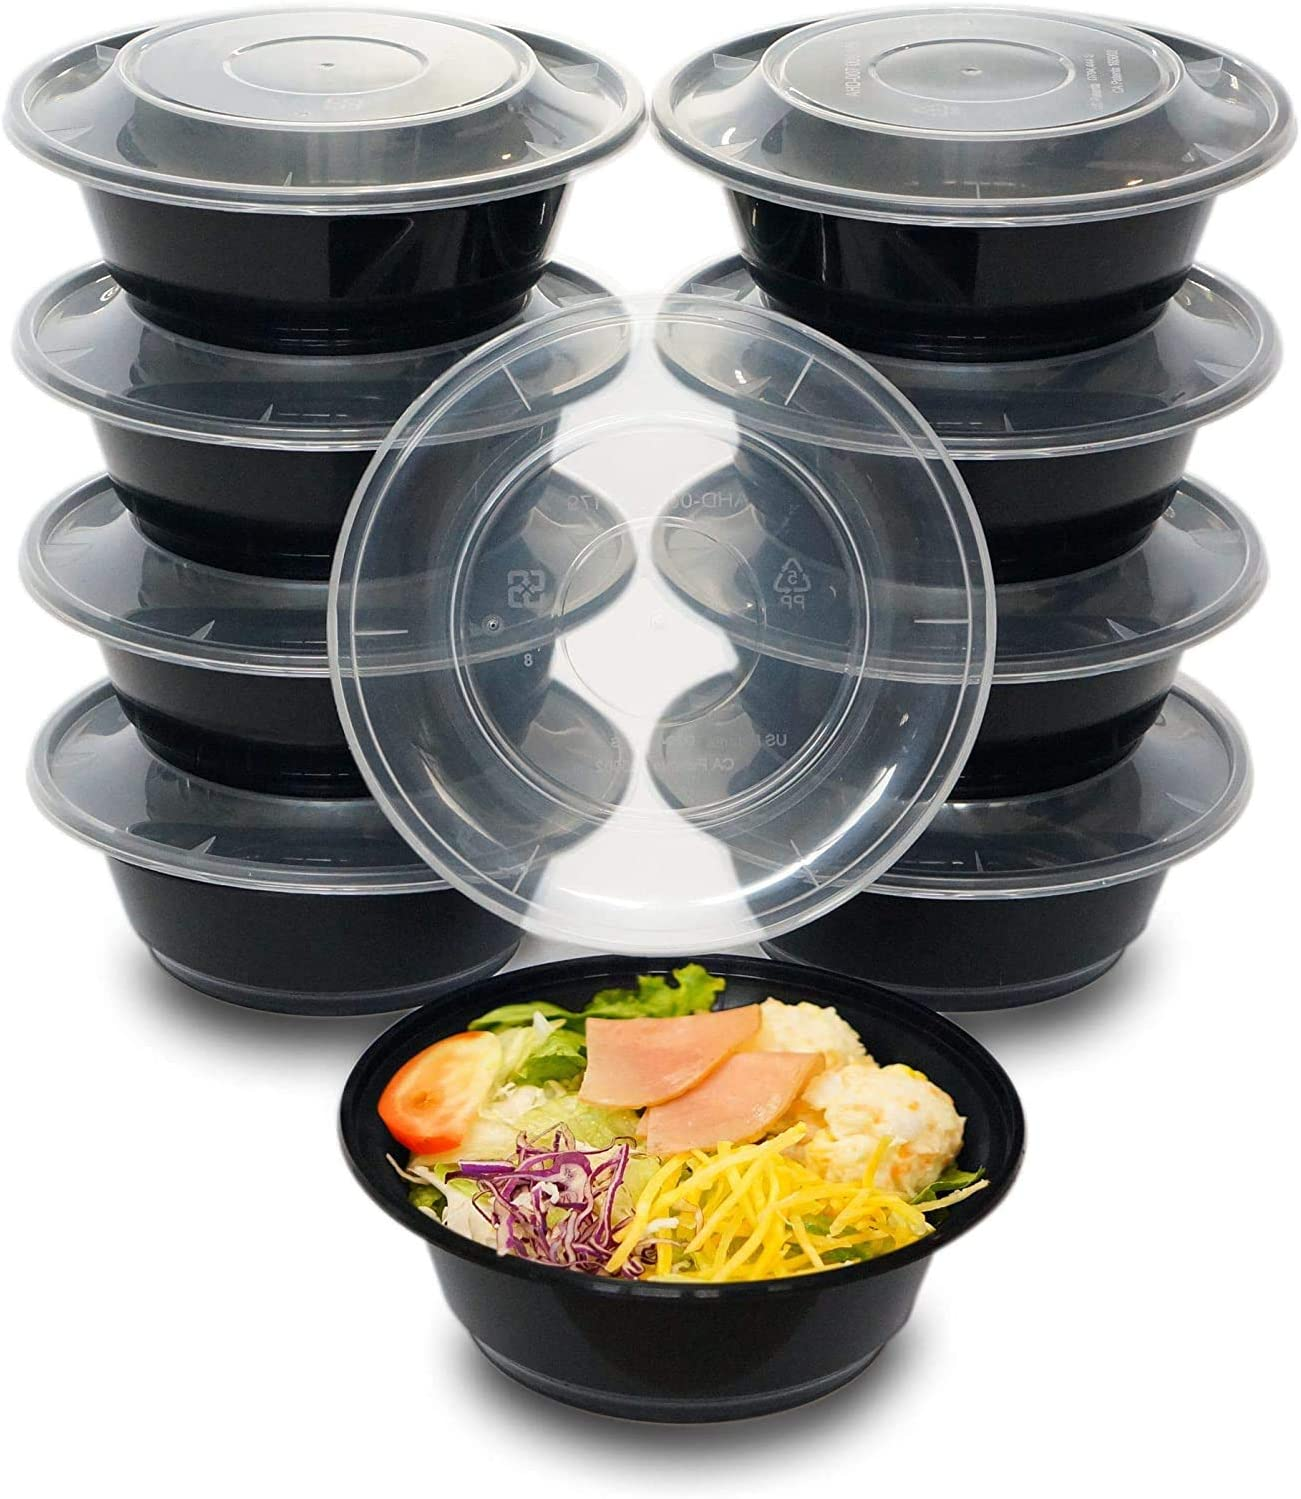 50 Pack Meal Prep Container 24oz with Lids, Reusable Food Delivery Storage Containers, Bento Lunch Box | BPA Free | Stackable | Microwave/Dishwasher/Freezer Safe 71BFCQ63hyL